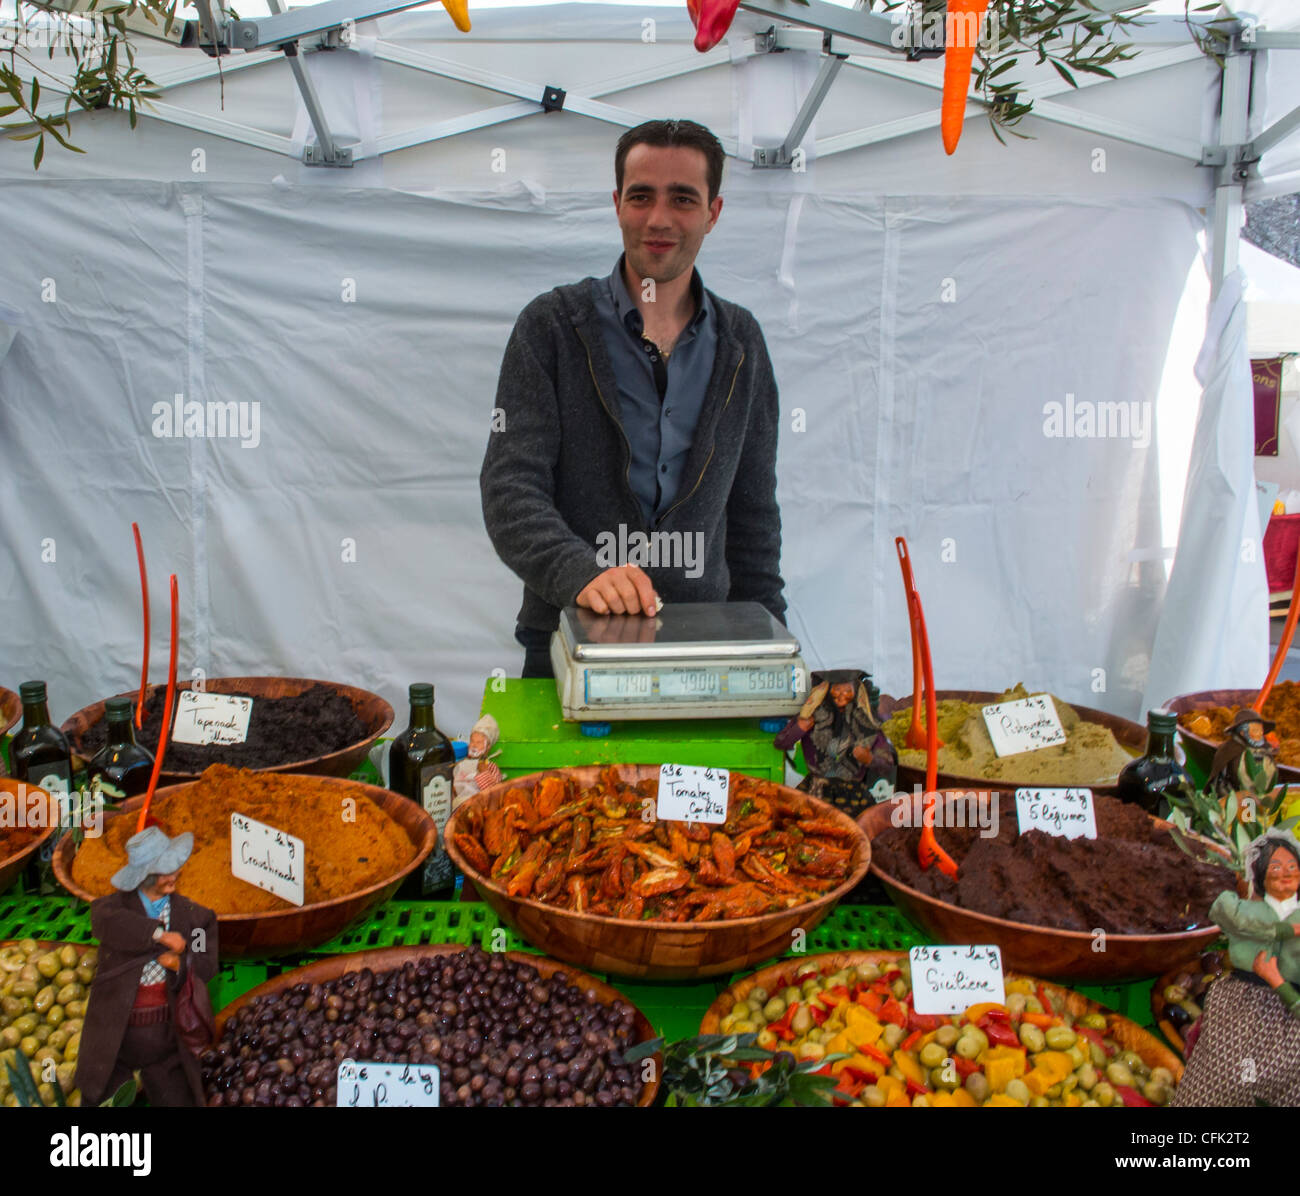 Paris, France, Clerk at Food Stall, French Food and Drink Pubic Market, with Local Products on Display, Street Vendor, - Stock Image